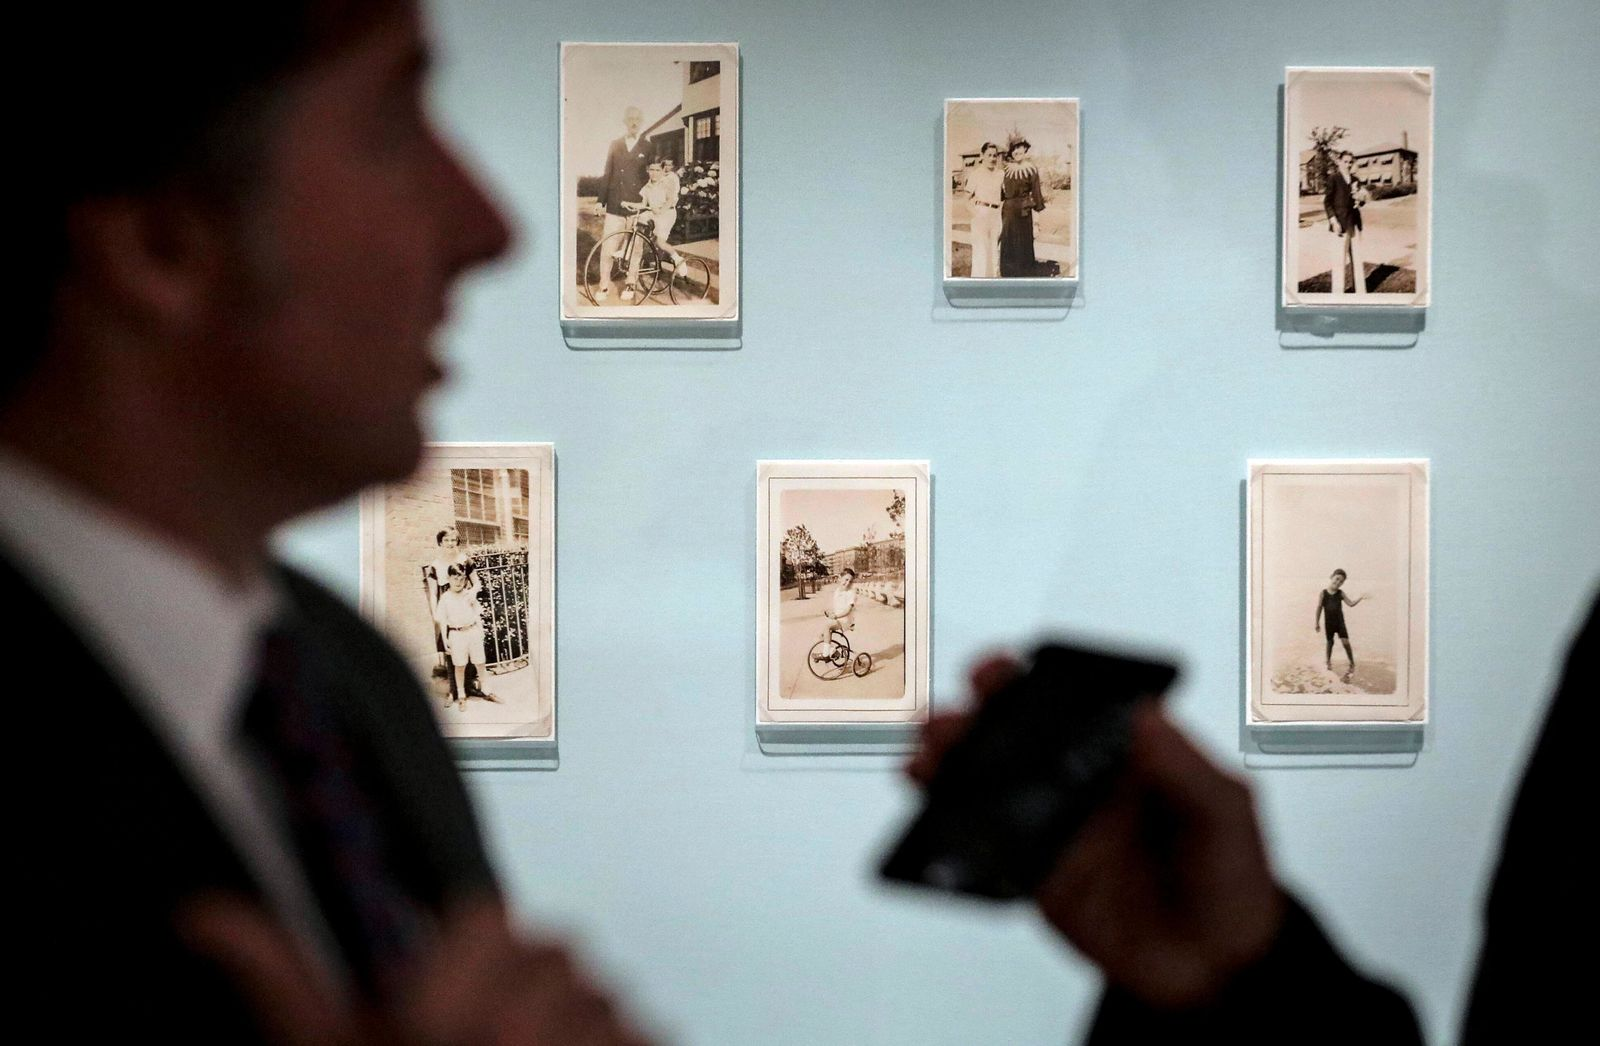 Declan Kiely, director of special collections and exhibitions at the New York Public Library, gives an interview next to childhood photographs of author J.D. Salinger, Wednesday, Oct. 16, 2019, in New York.{ } (AP Photo/Bebeto Matthews)